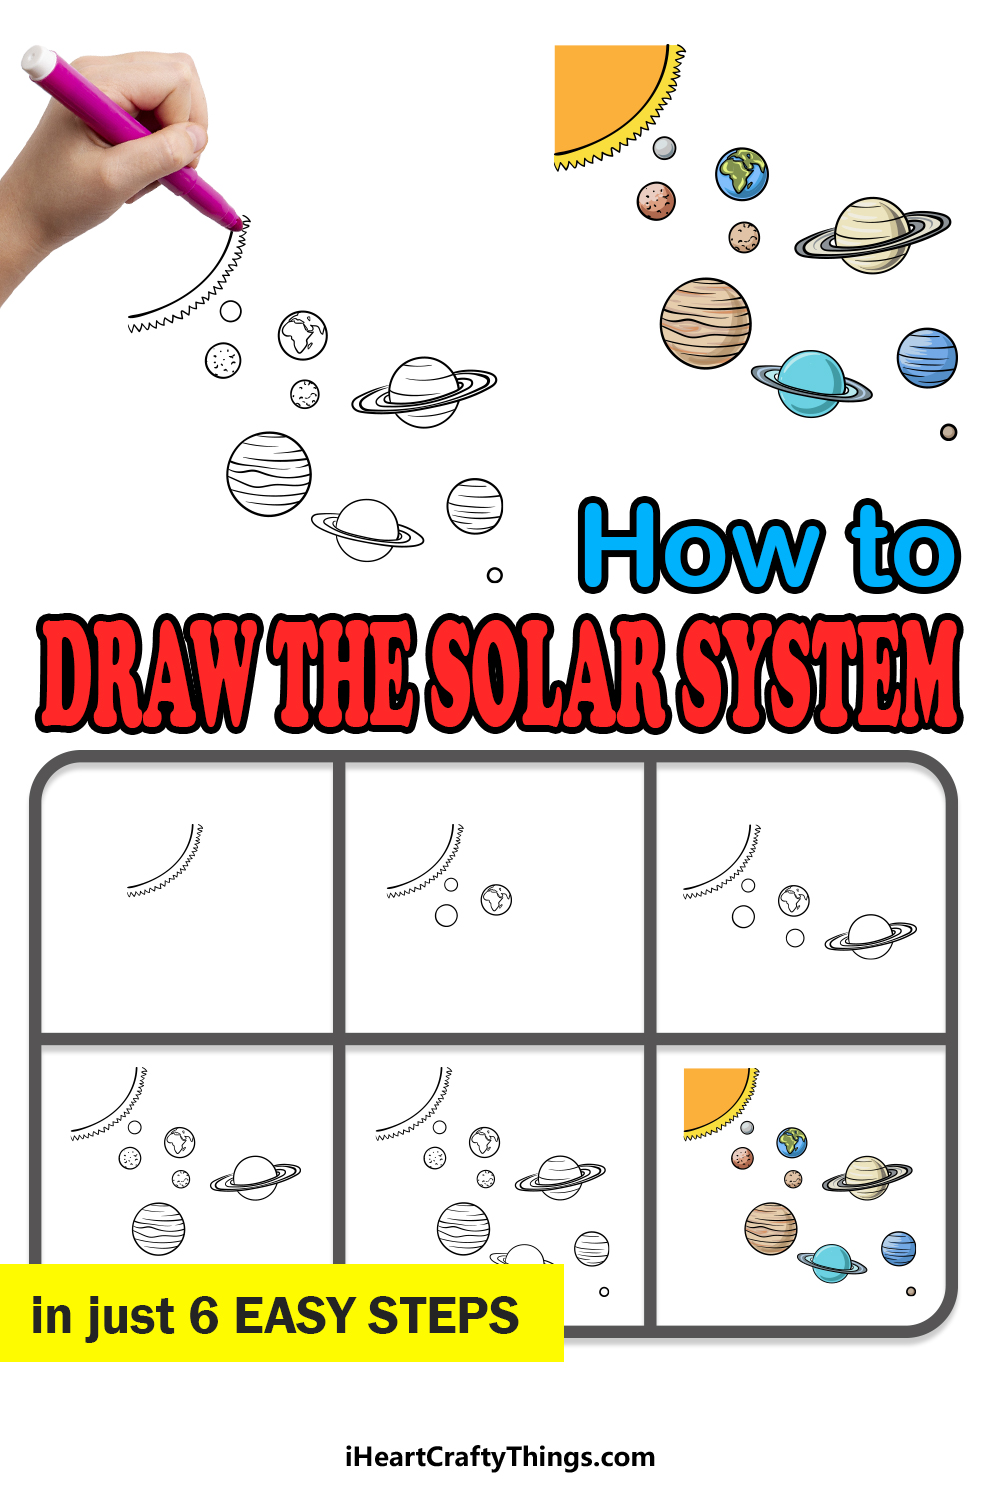 how to draw the solar system in 6 easy steps